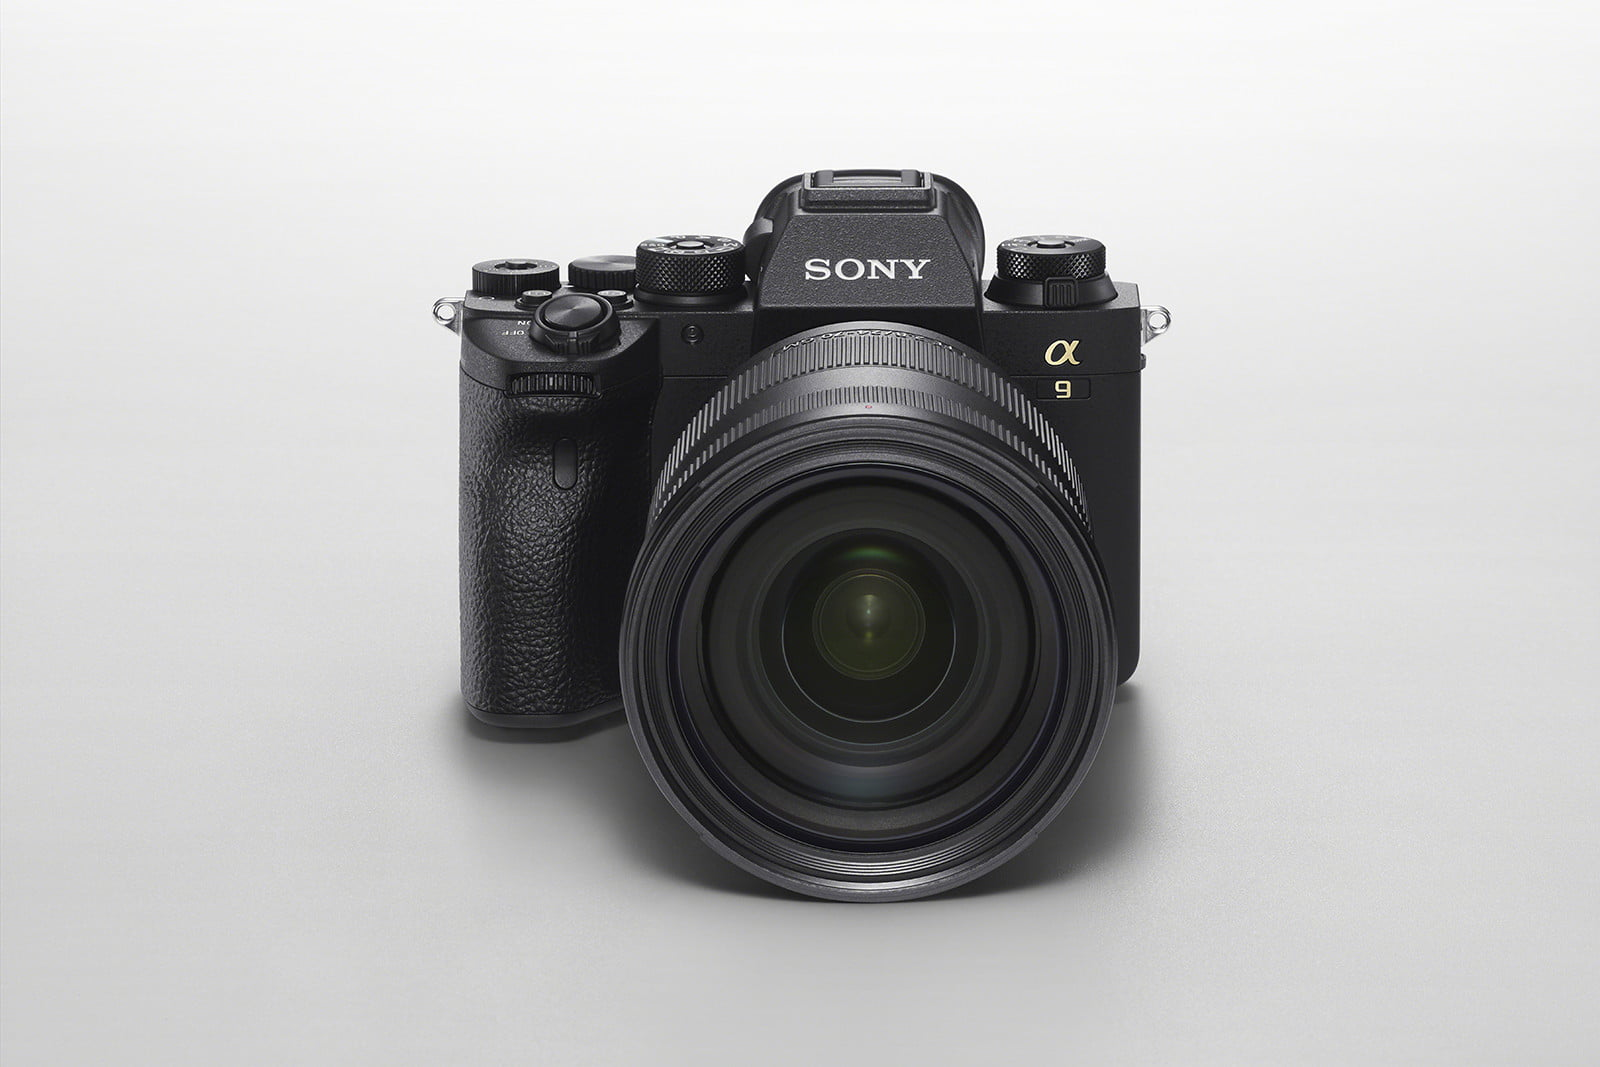 Sony tames the mirrorless speed demon with updated autofocus in the new A9 II